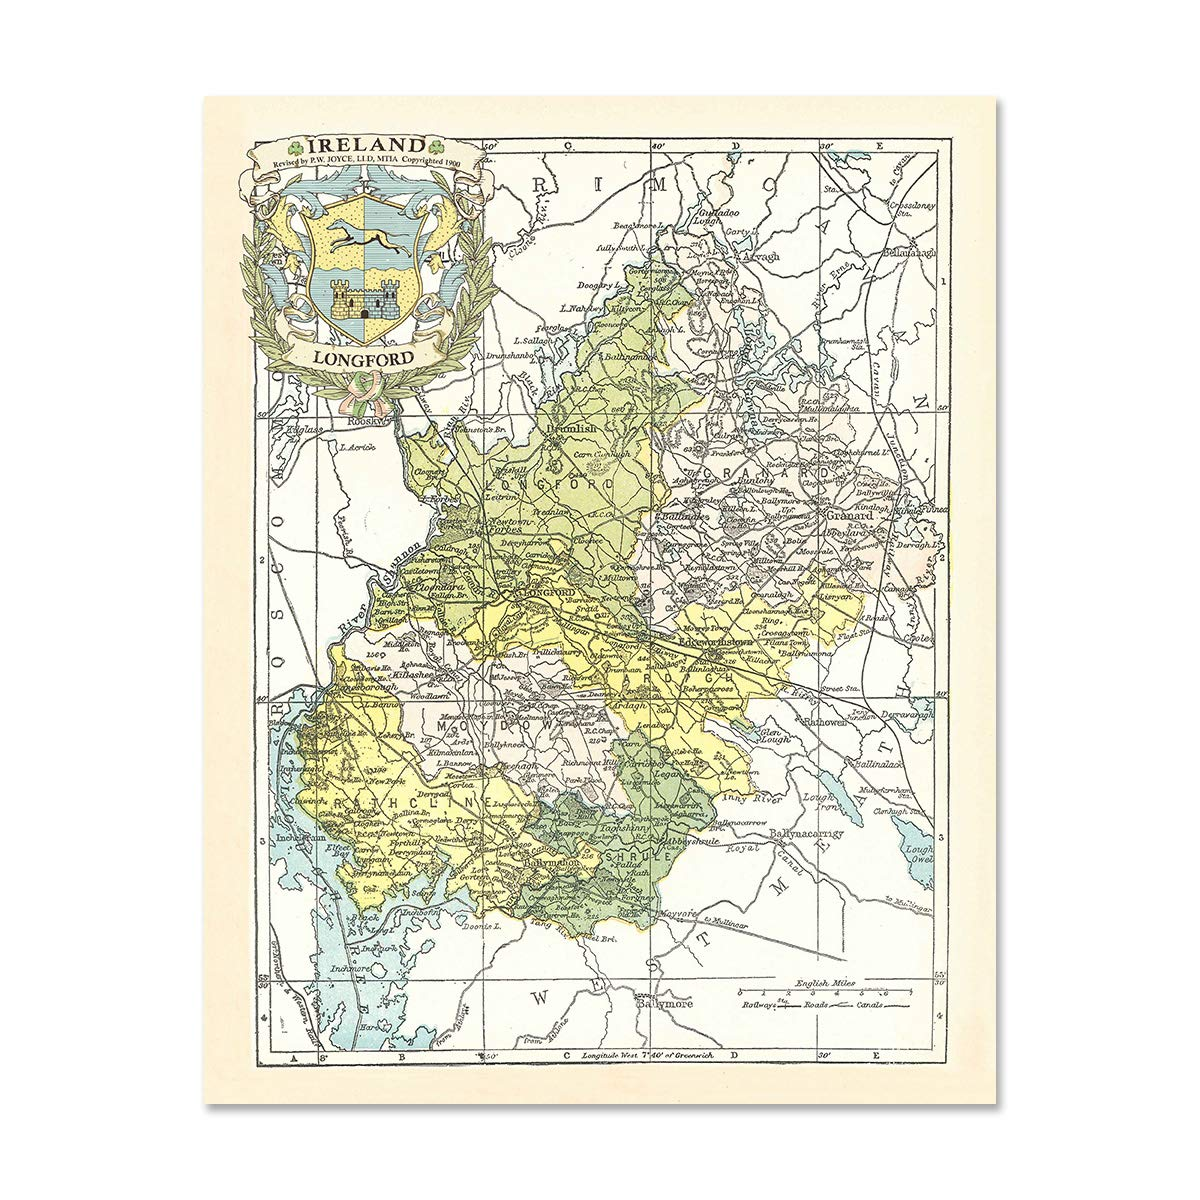 Map Of Ireland Longford.Historic Families Longford County Map Of Ireland Antique Reproduction Print